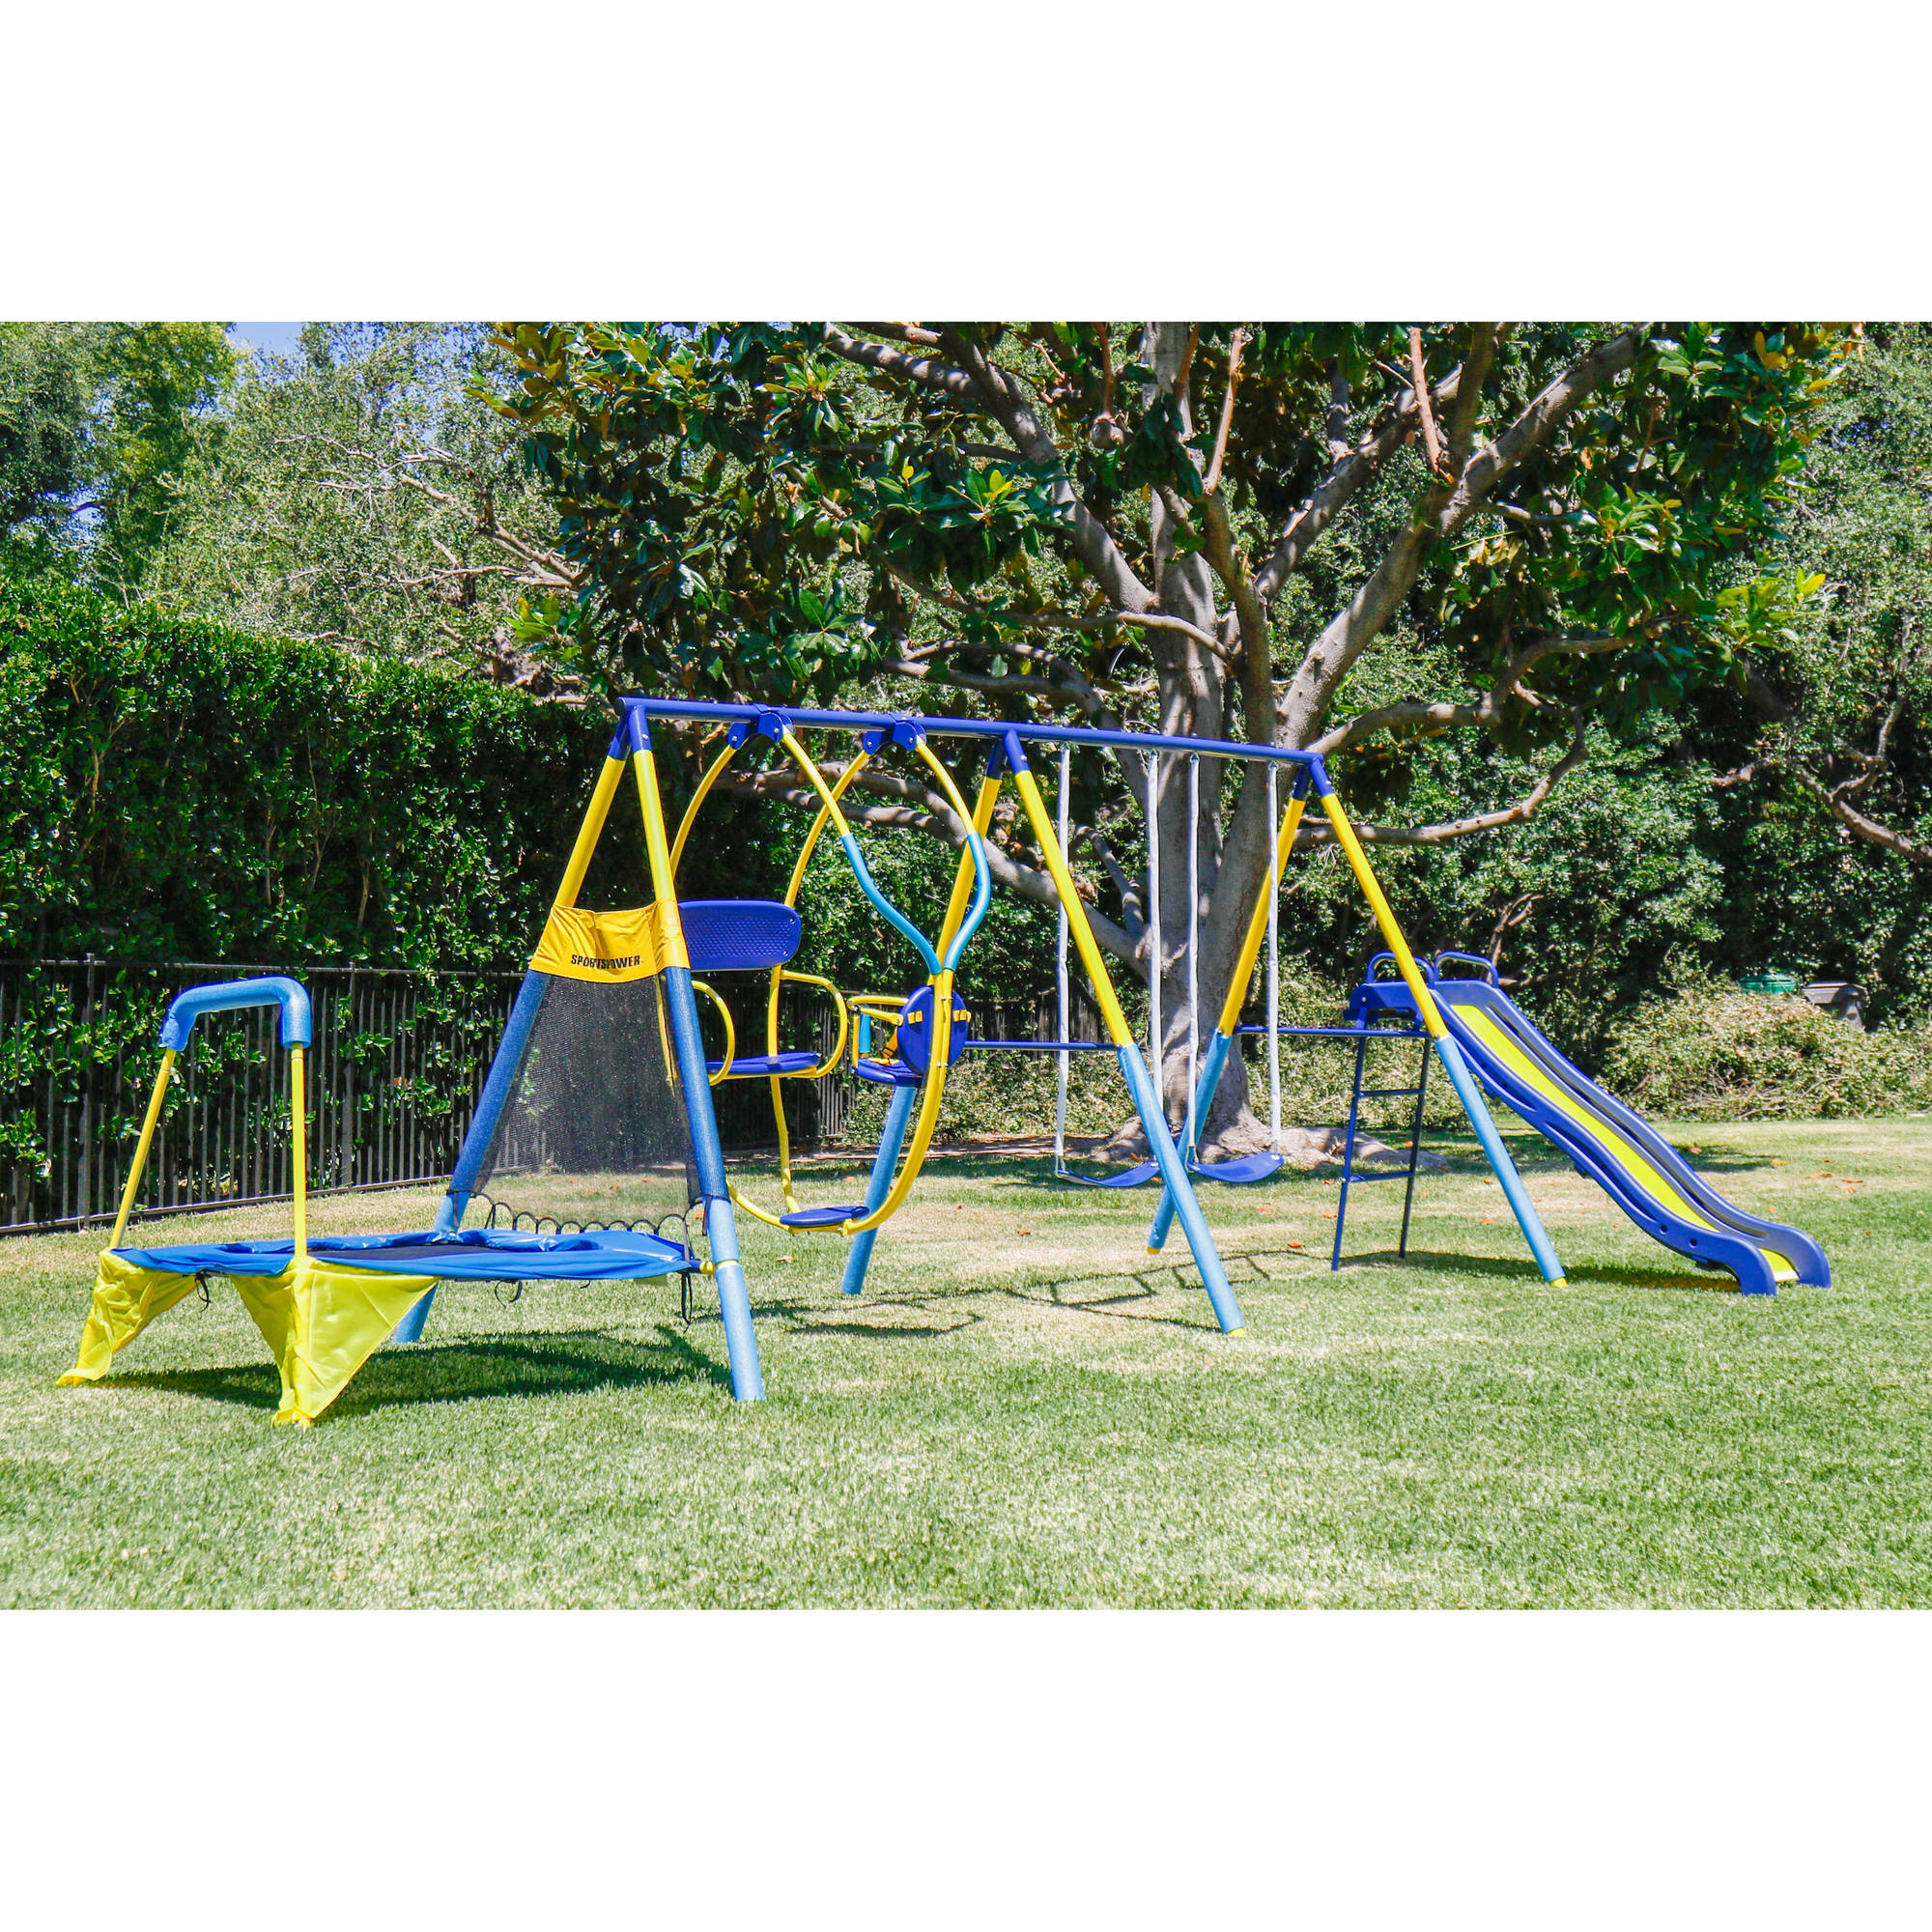 flexibleflyerplaypark cfm sets metal master flexible hayneedle flyer swing product set play park